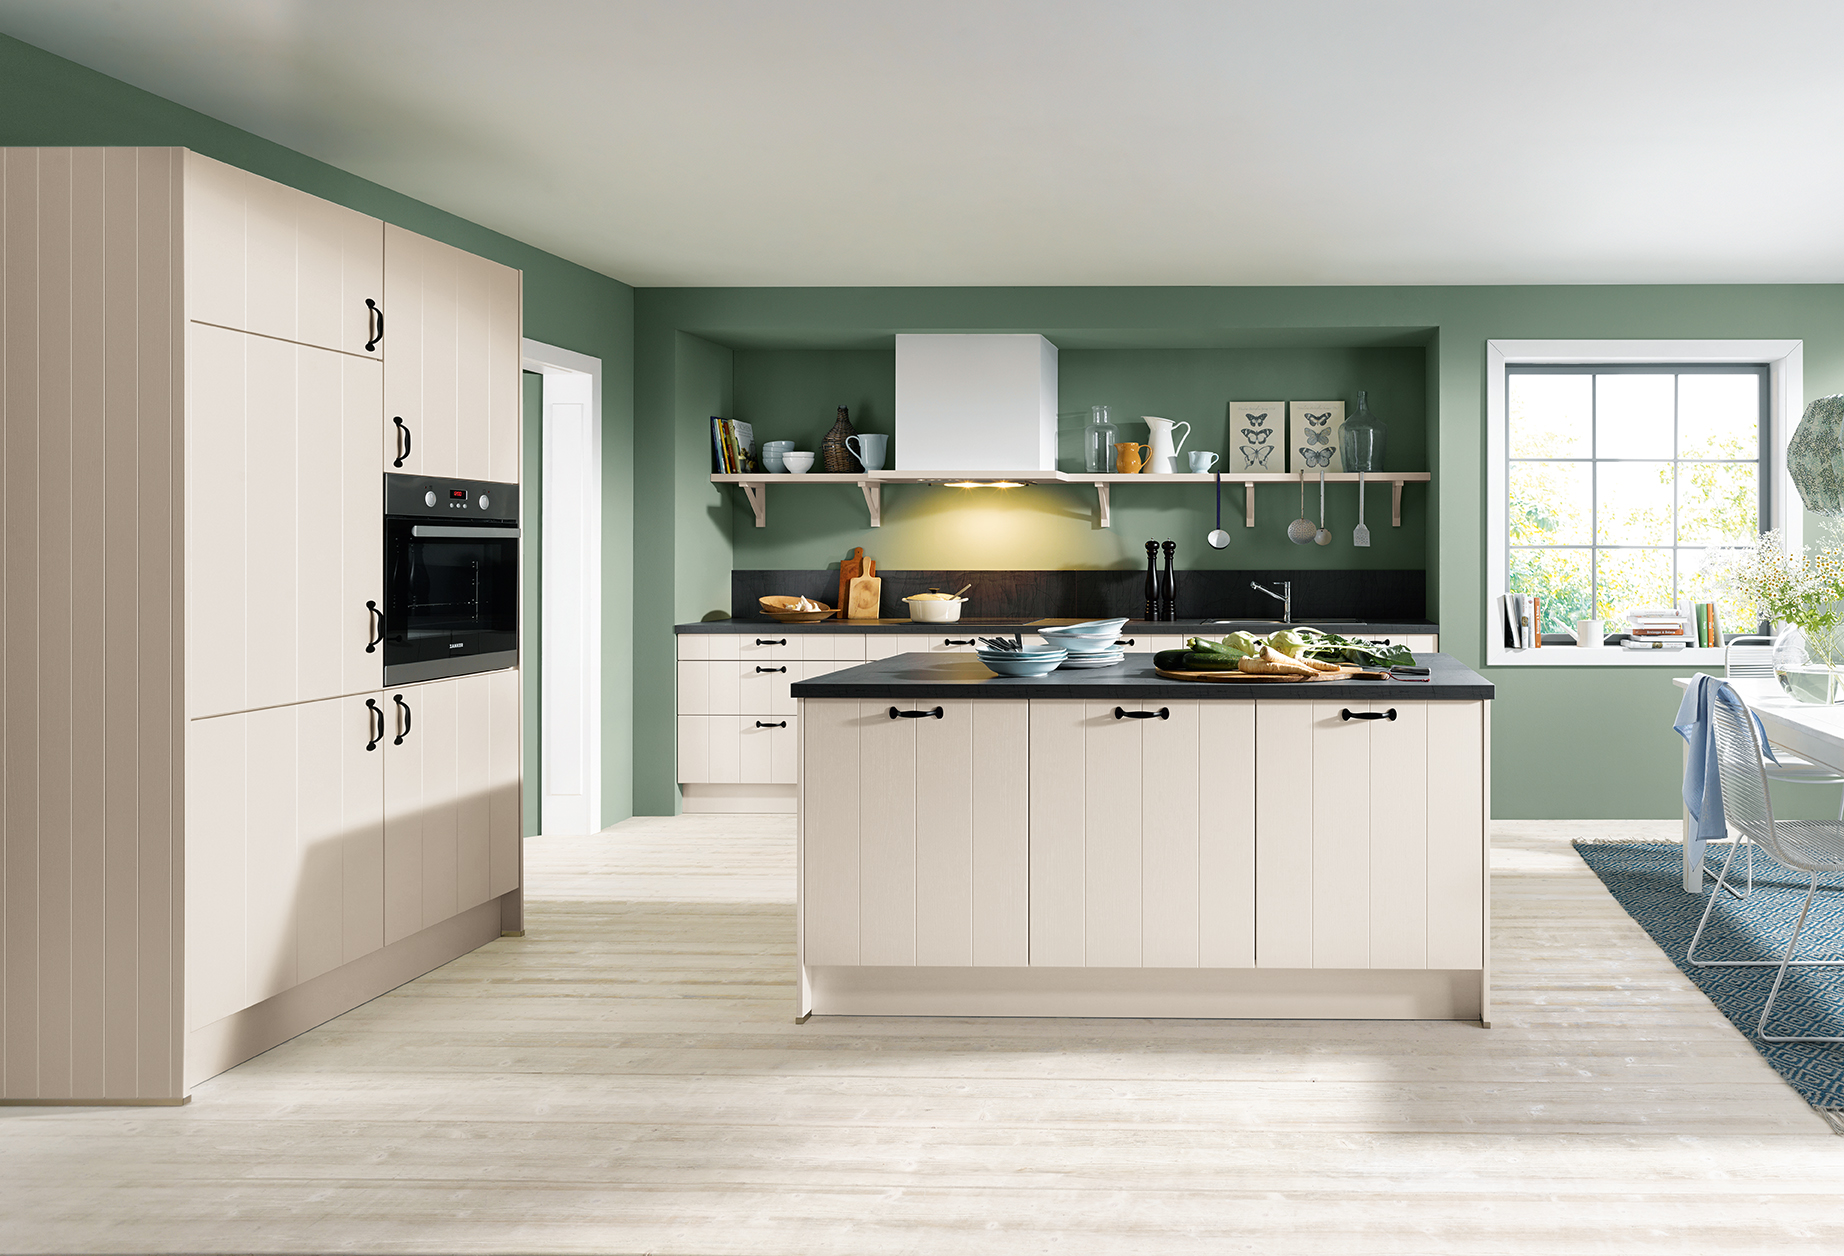 Uncategorized Kitchen Design Cardiff kitchens by artisan let the experts design domus schuller german 01